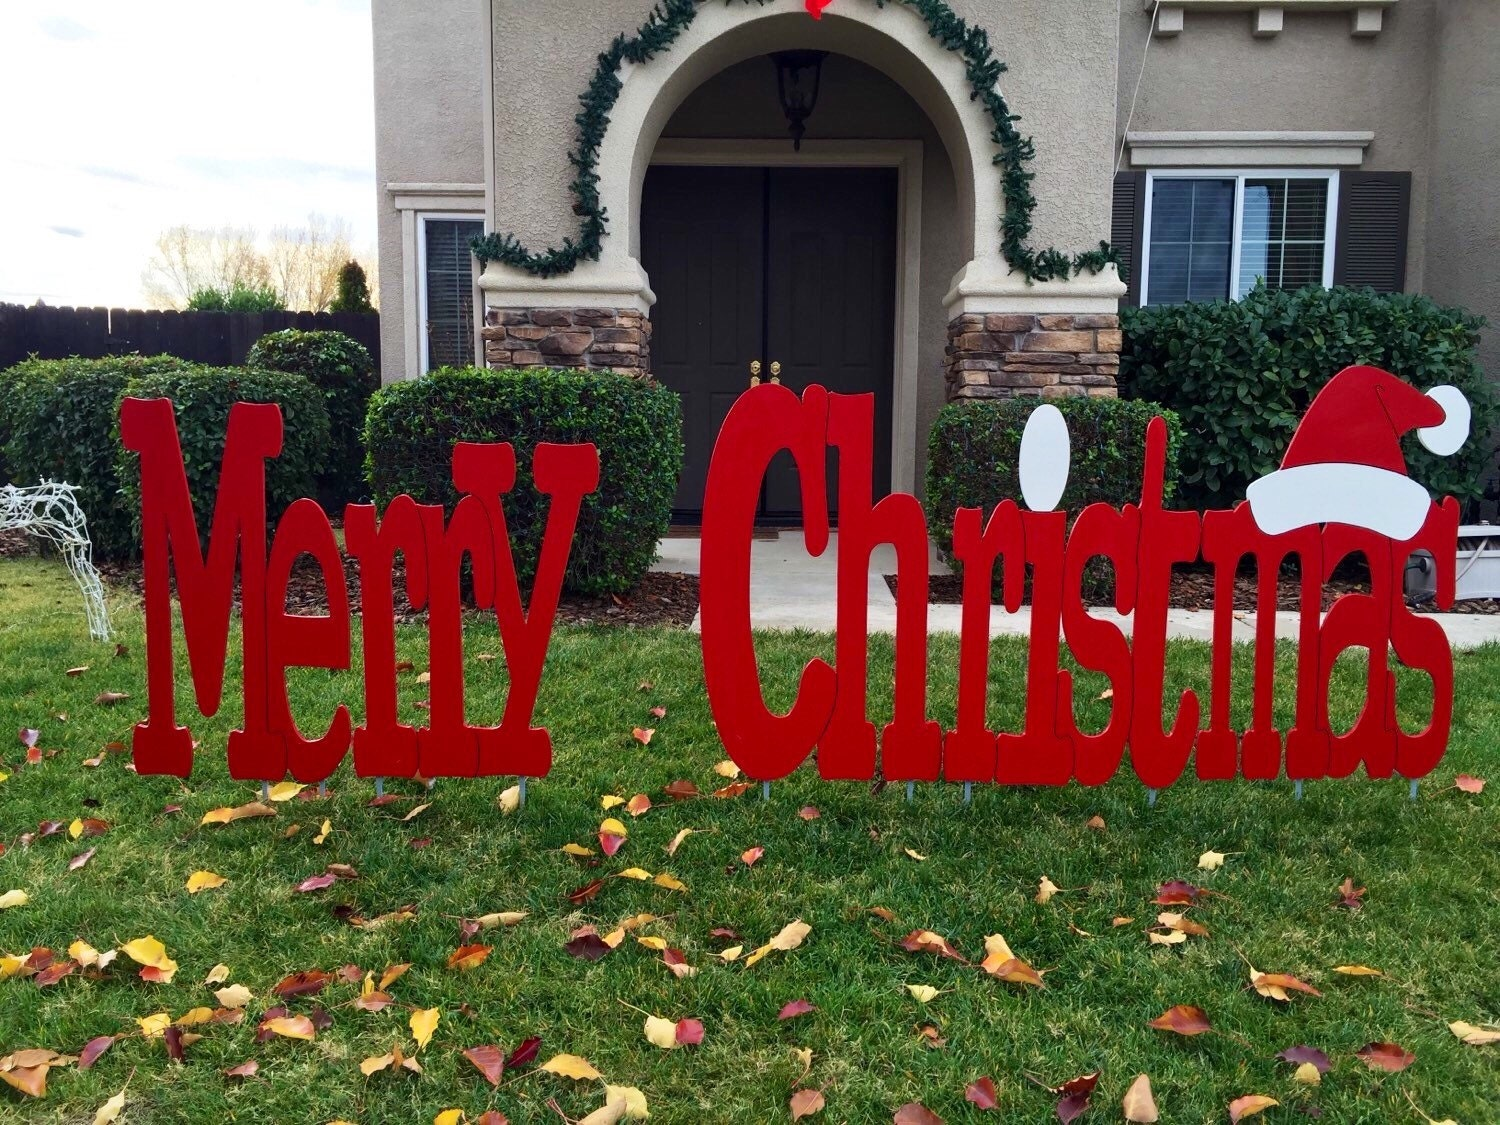 Merry christmas outdoor holiday yard art sign large for Christmas yard decorations